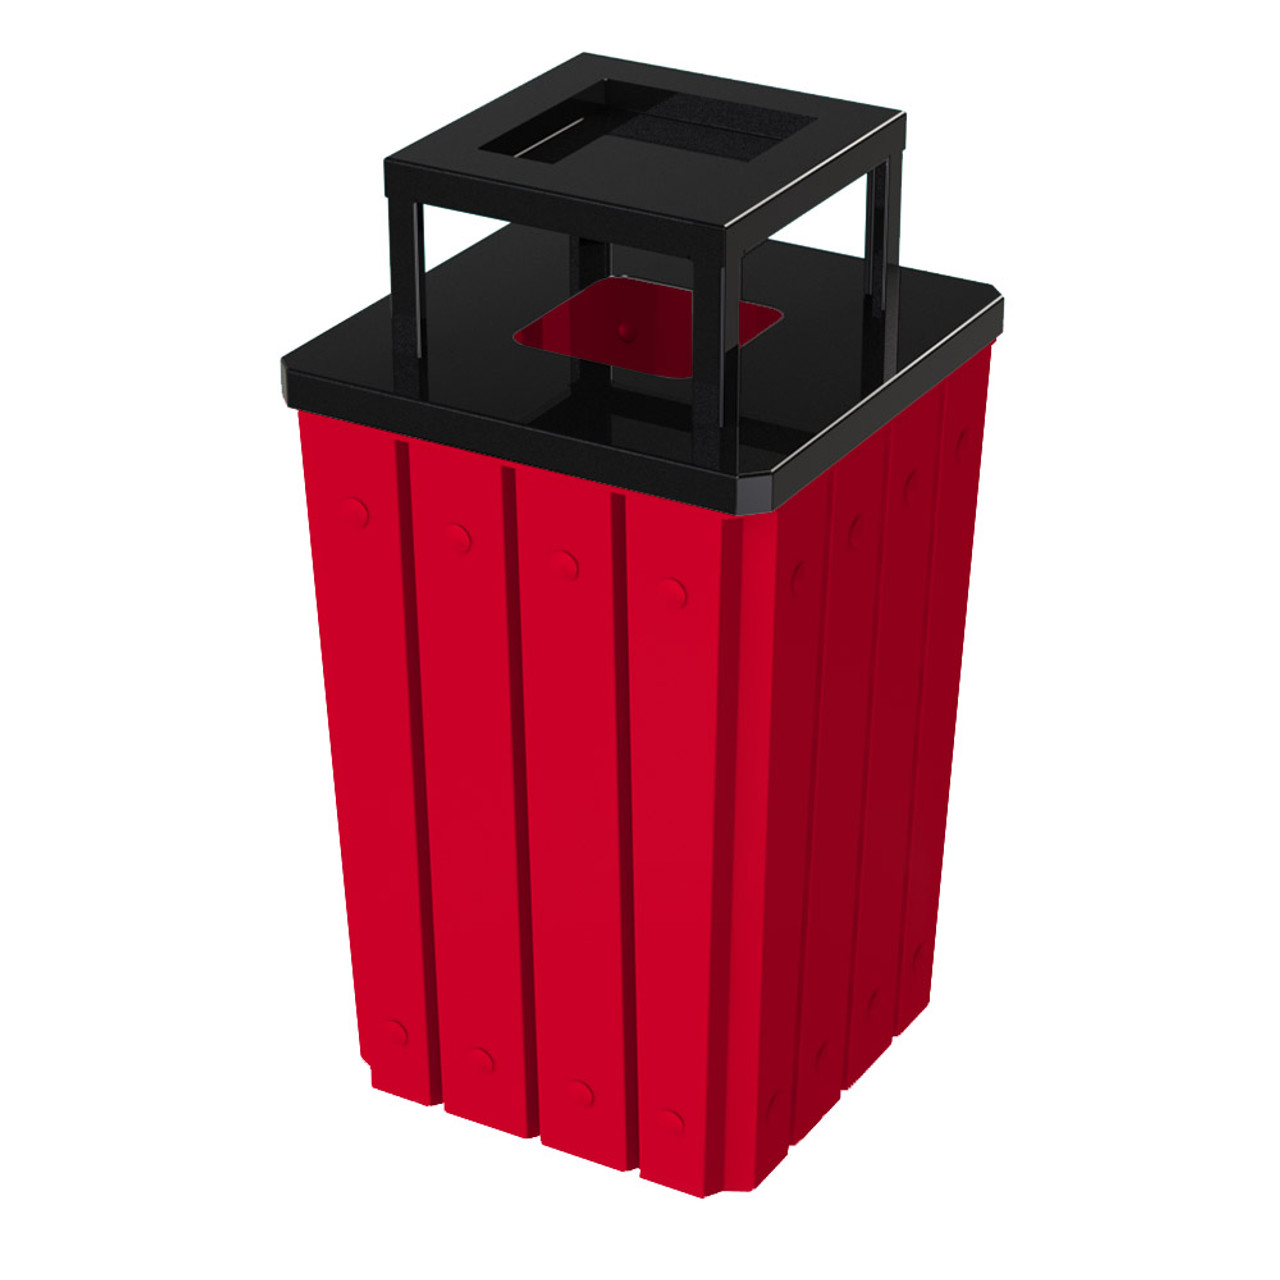 32 Gallon Heavy Duty Red Ash Trash Can with Liner S8295S-00-137